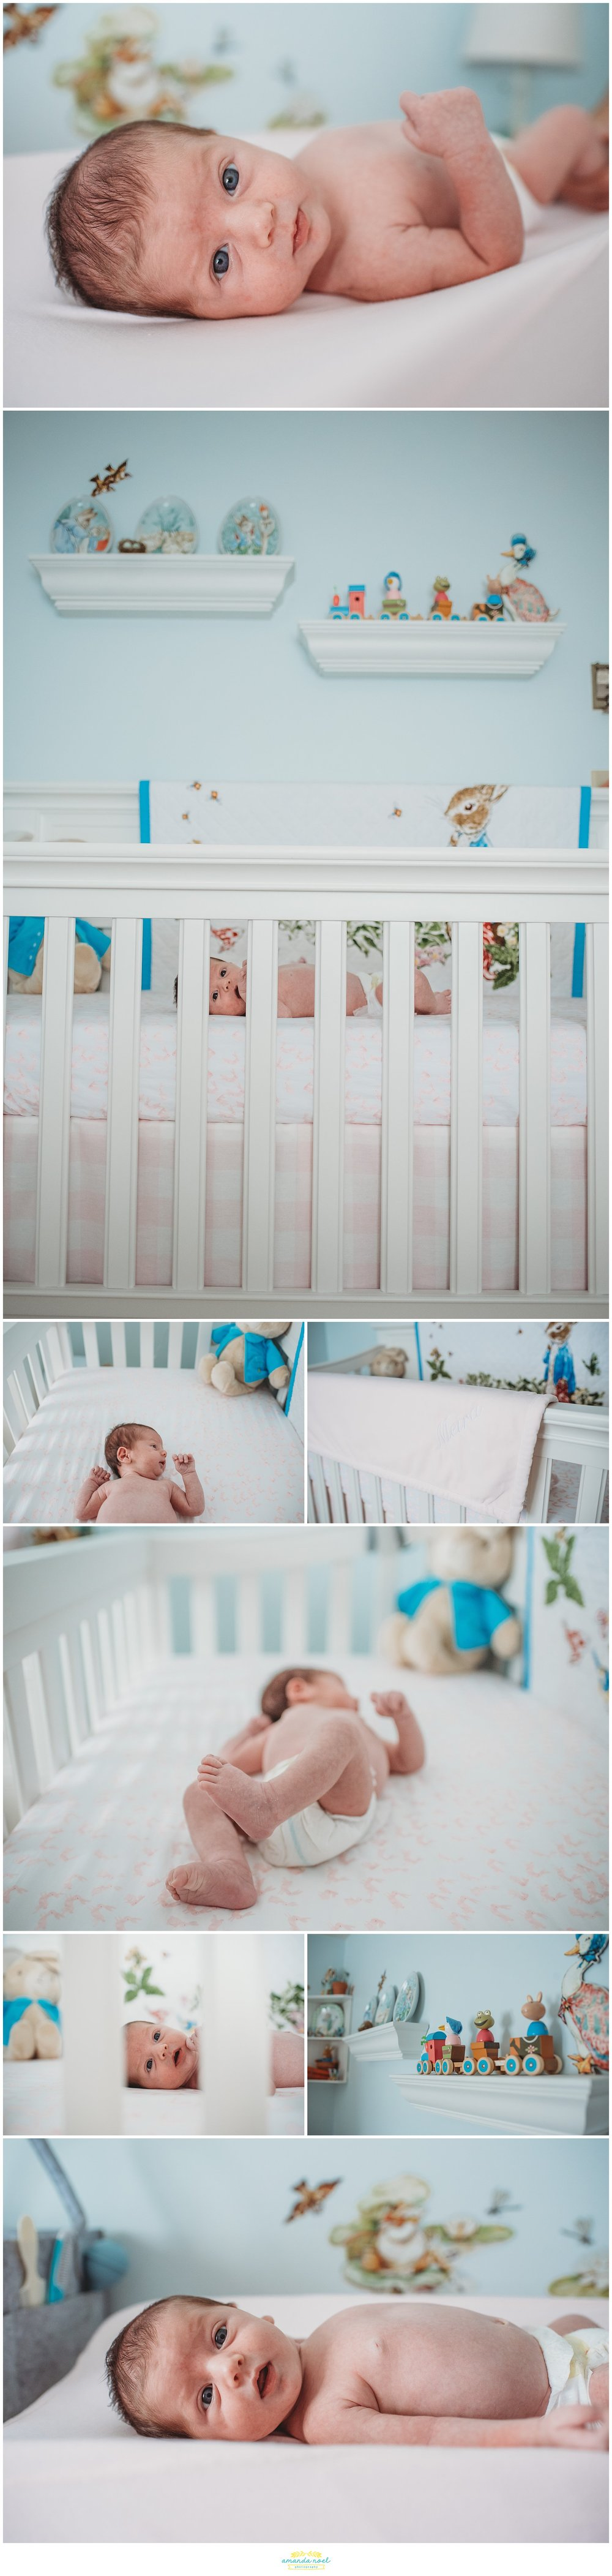 Dayton-Ohio-Newborn-Photographer